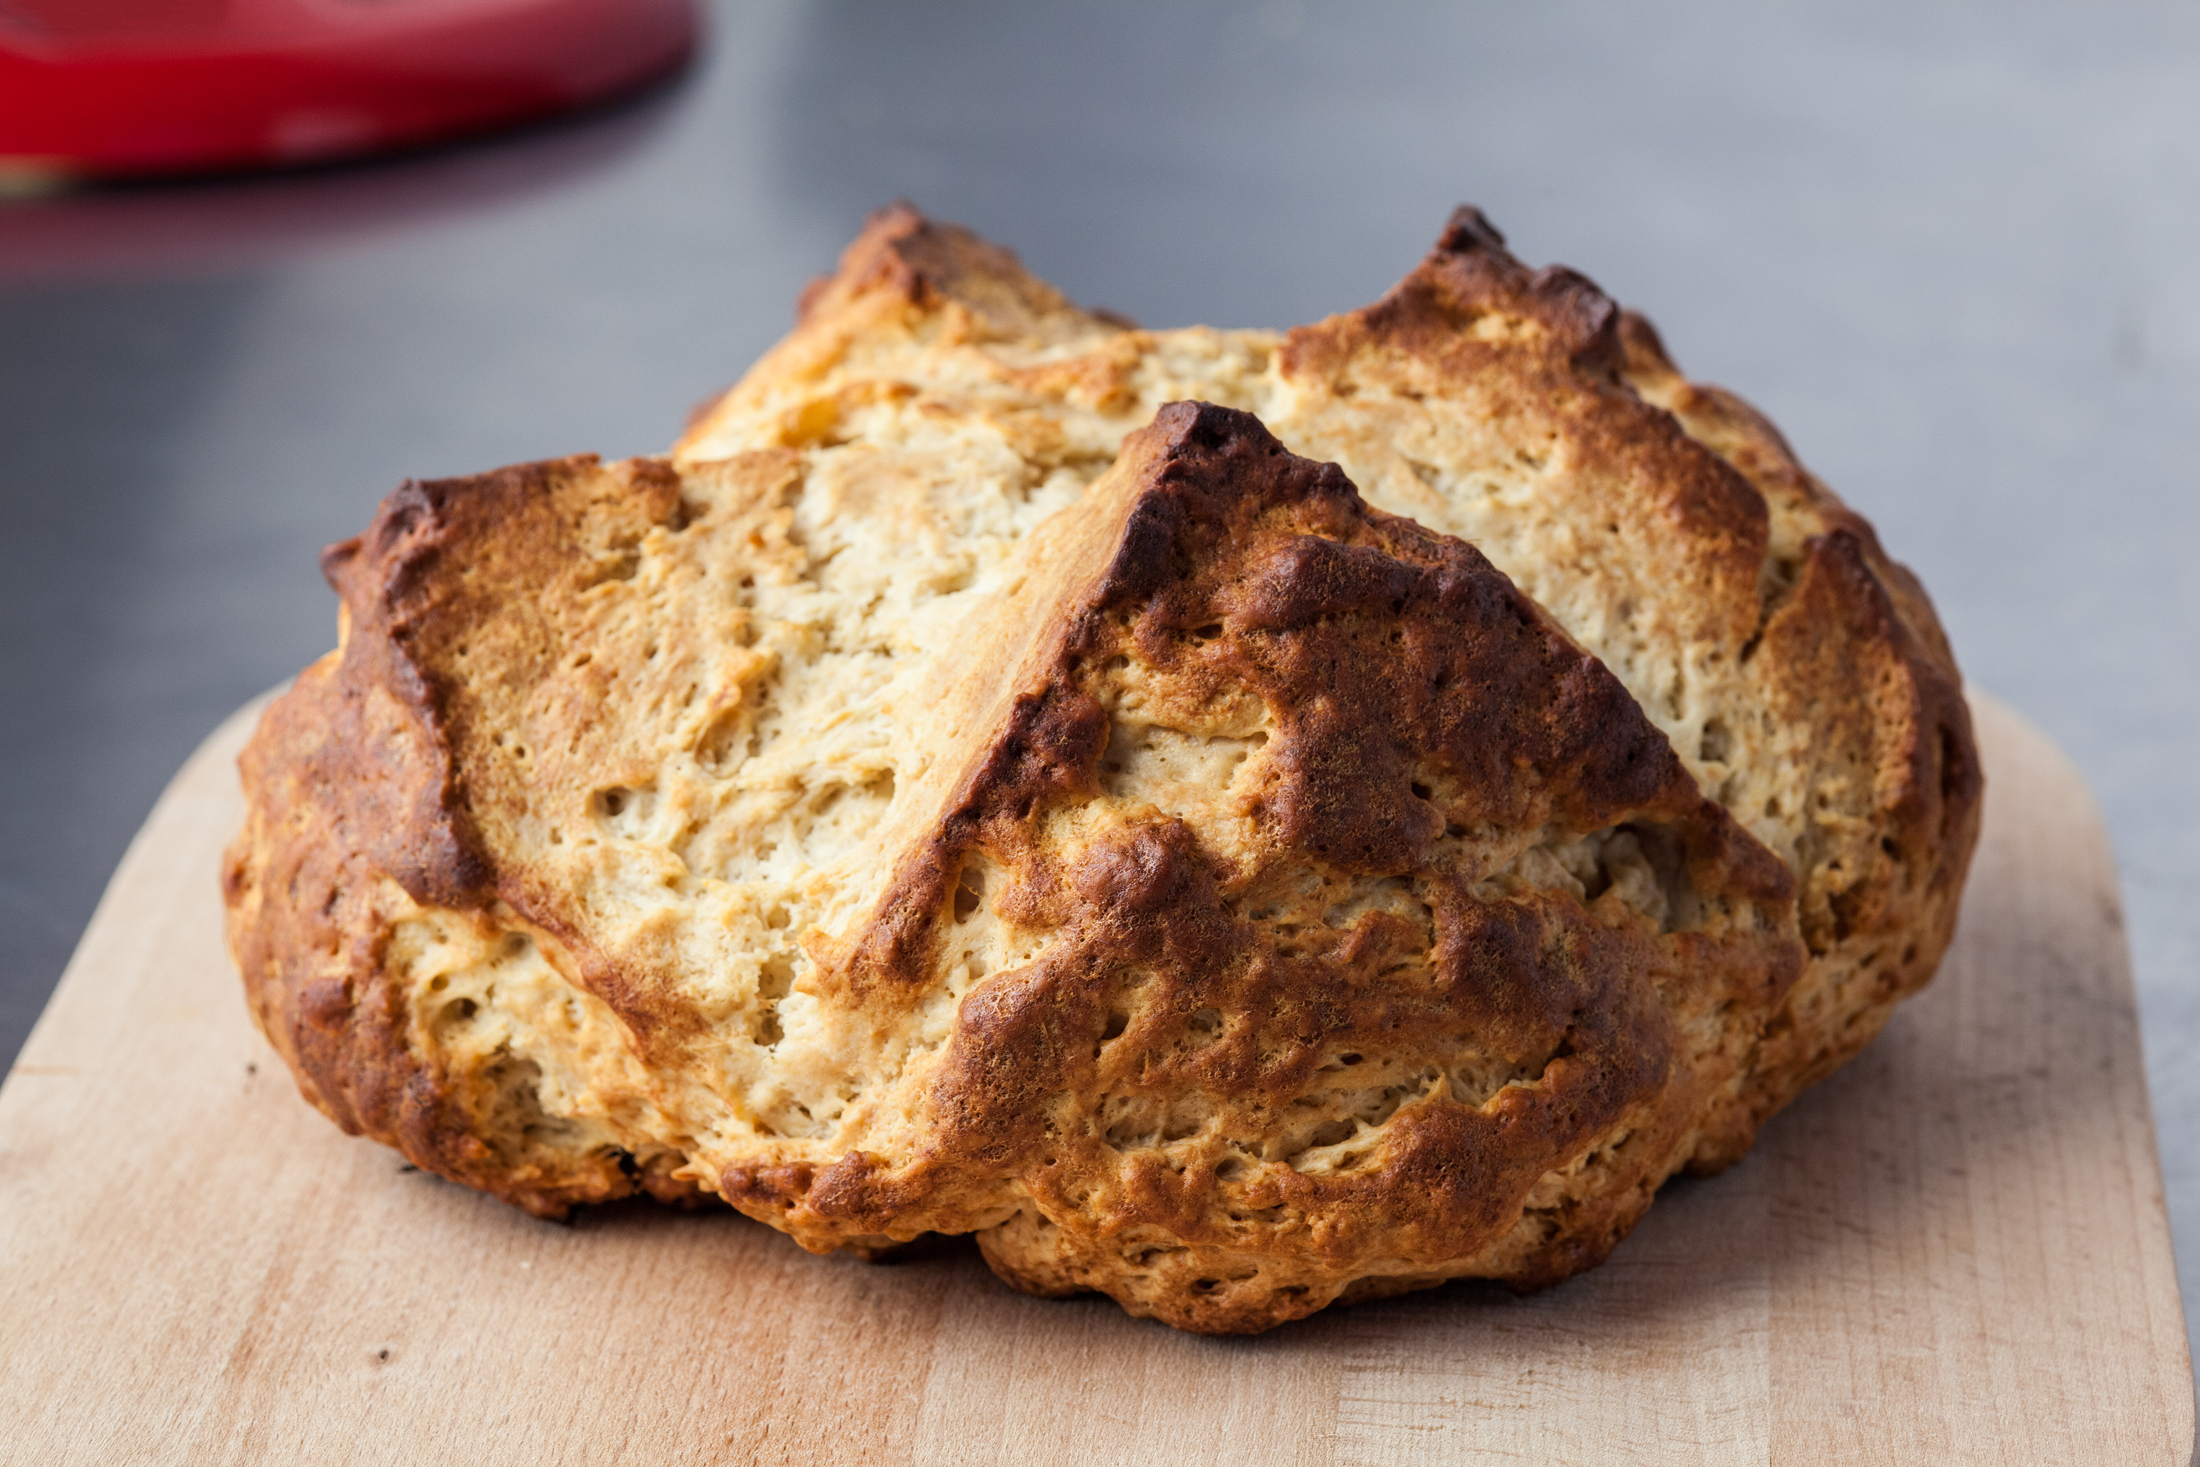 A fully realized Soda Bread (chowhound.com)